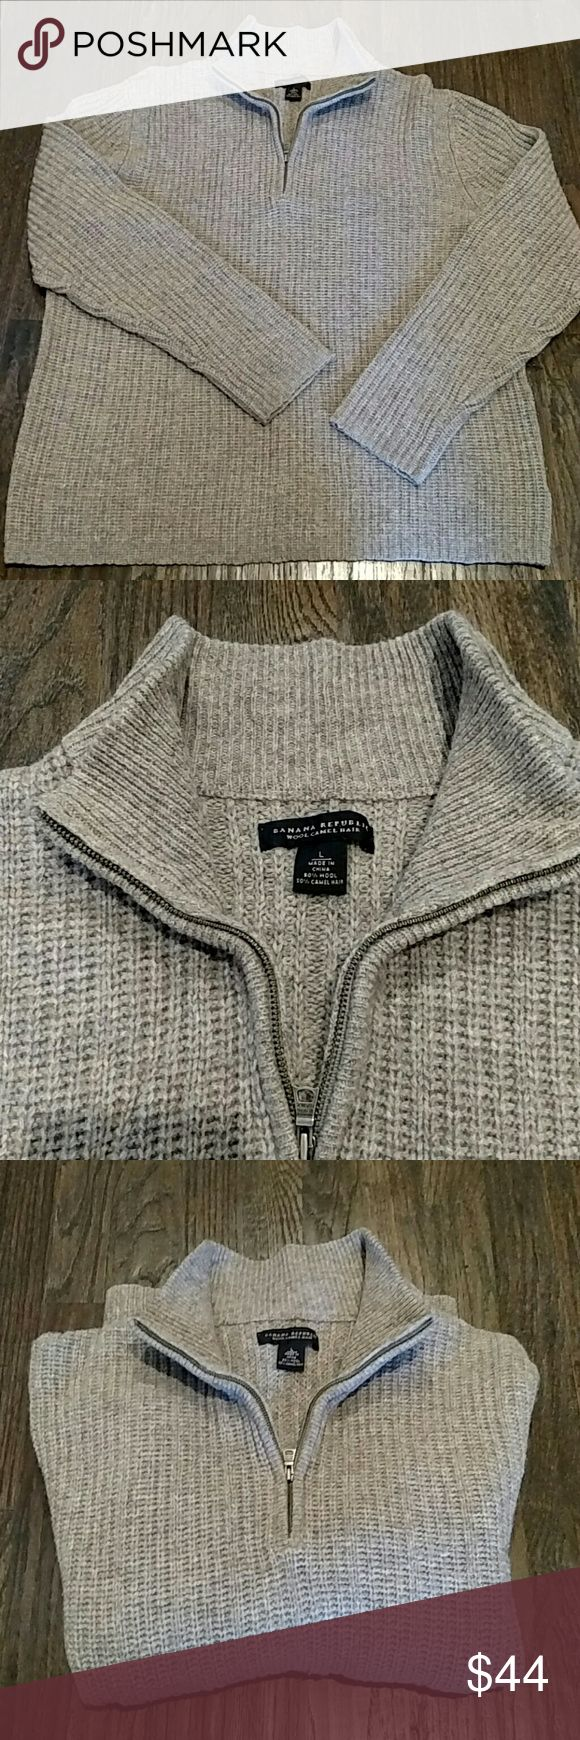 """Banana Republic men's sweater wool camel hair L Used but still got use in it.  50% wool and camel hair.  Zip up collar.  I'd call it a brown cream color.  It is slightly short on the length, so if you wear large but don't have a long body, this is great.  From mid shoulder to bottom is 26.5"""" long. Banana Republic Sweaters Zip Up"""